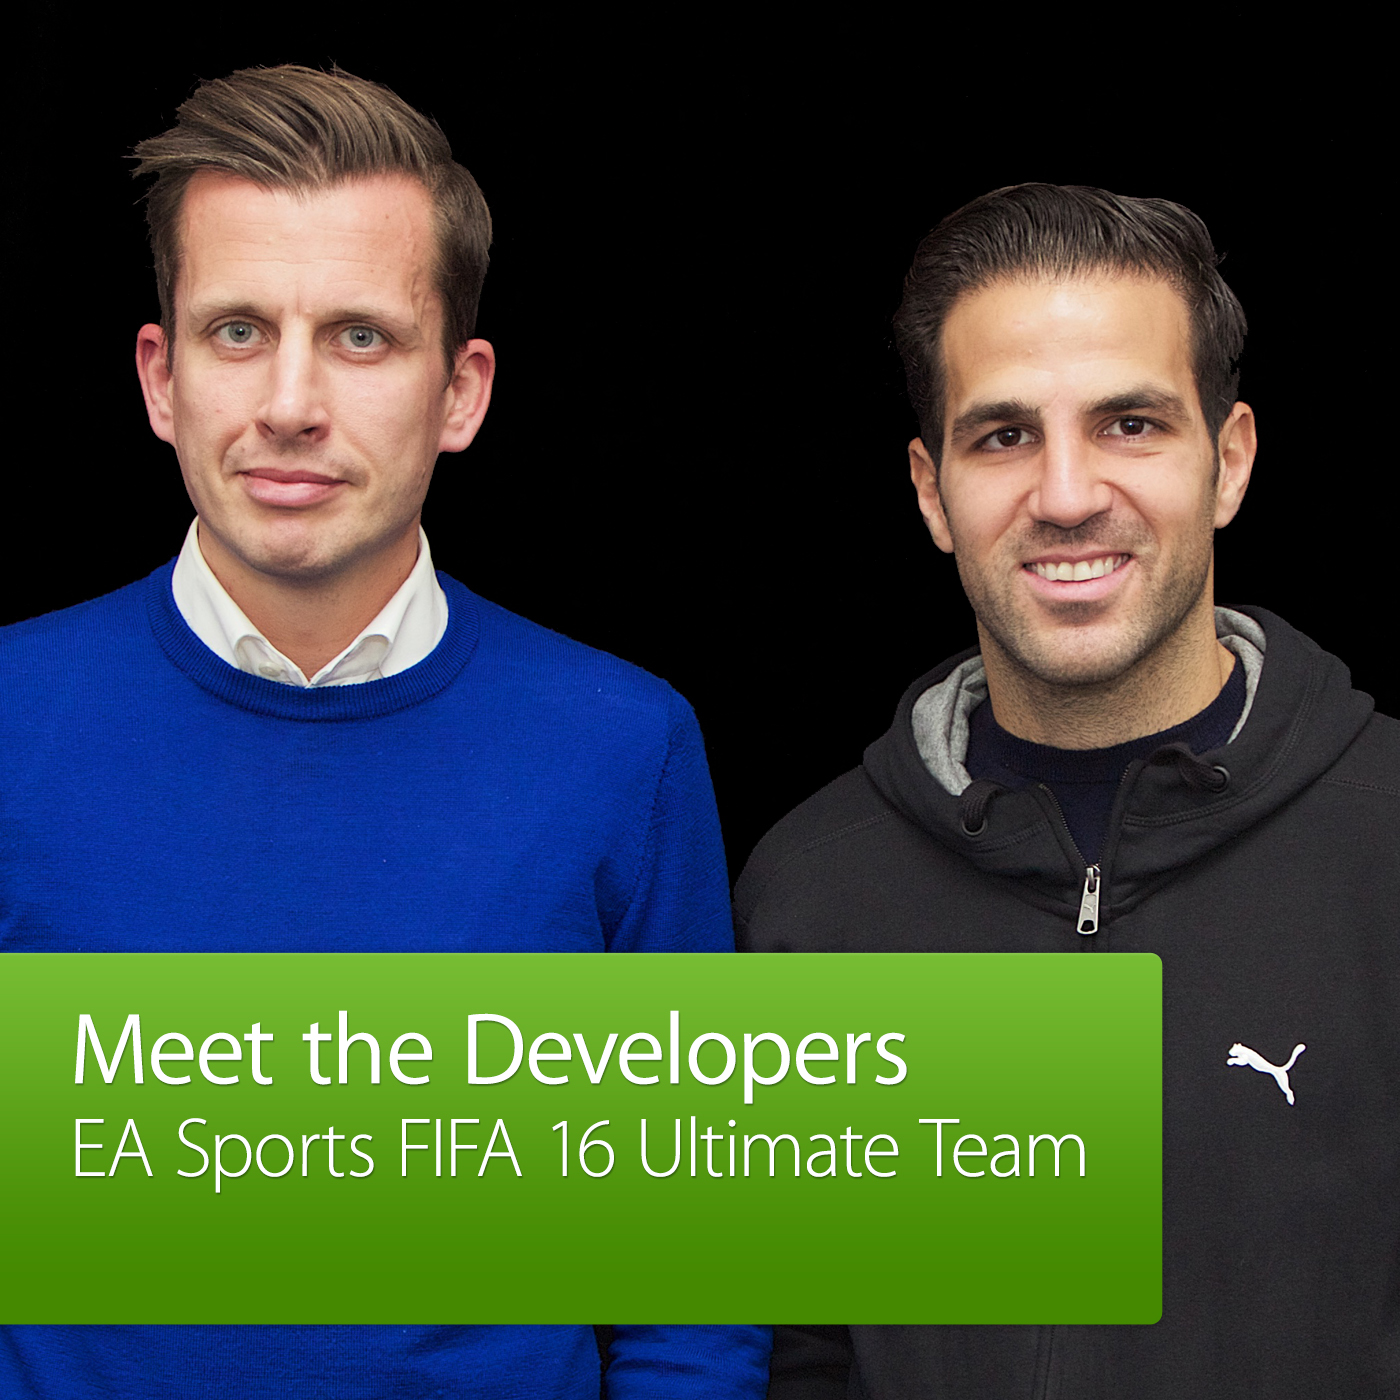 EA SPORTS FIFA 16 with Cesc Fàbregas: Meet the Developers